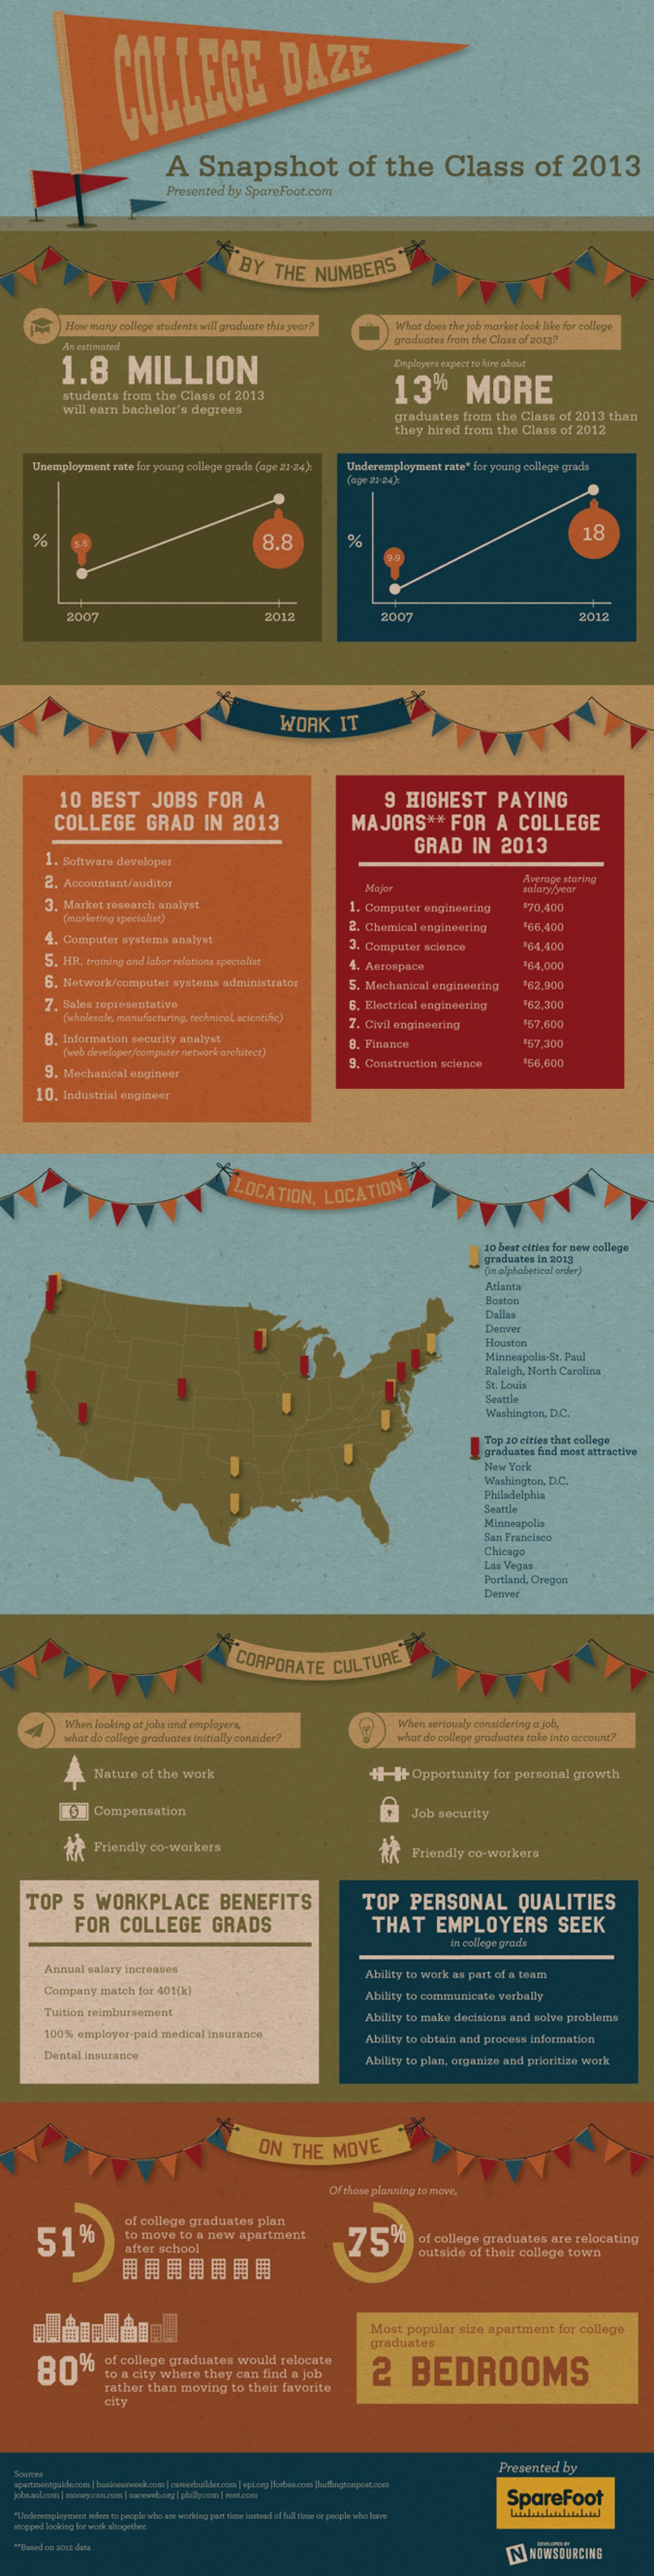 College Daze: A Snapshot of the Class of 2013 Infographic